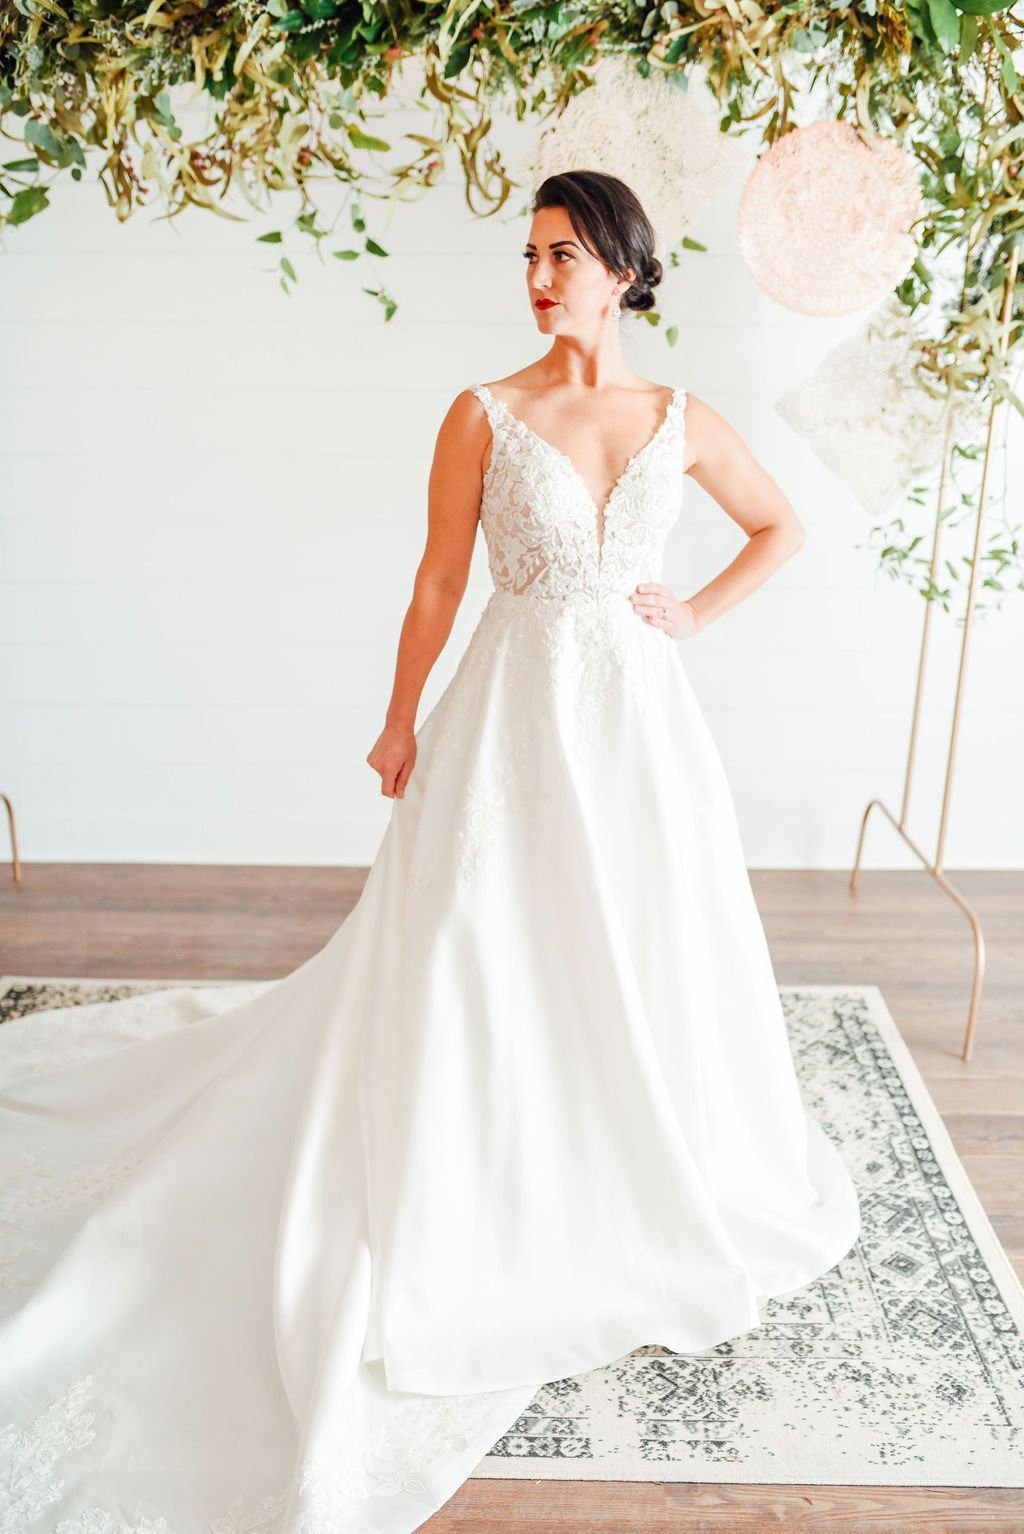 The Wedding Studio in Greenwood Indiana offers a unique